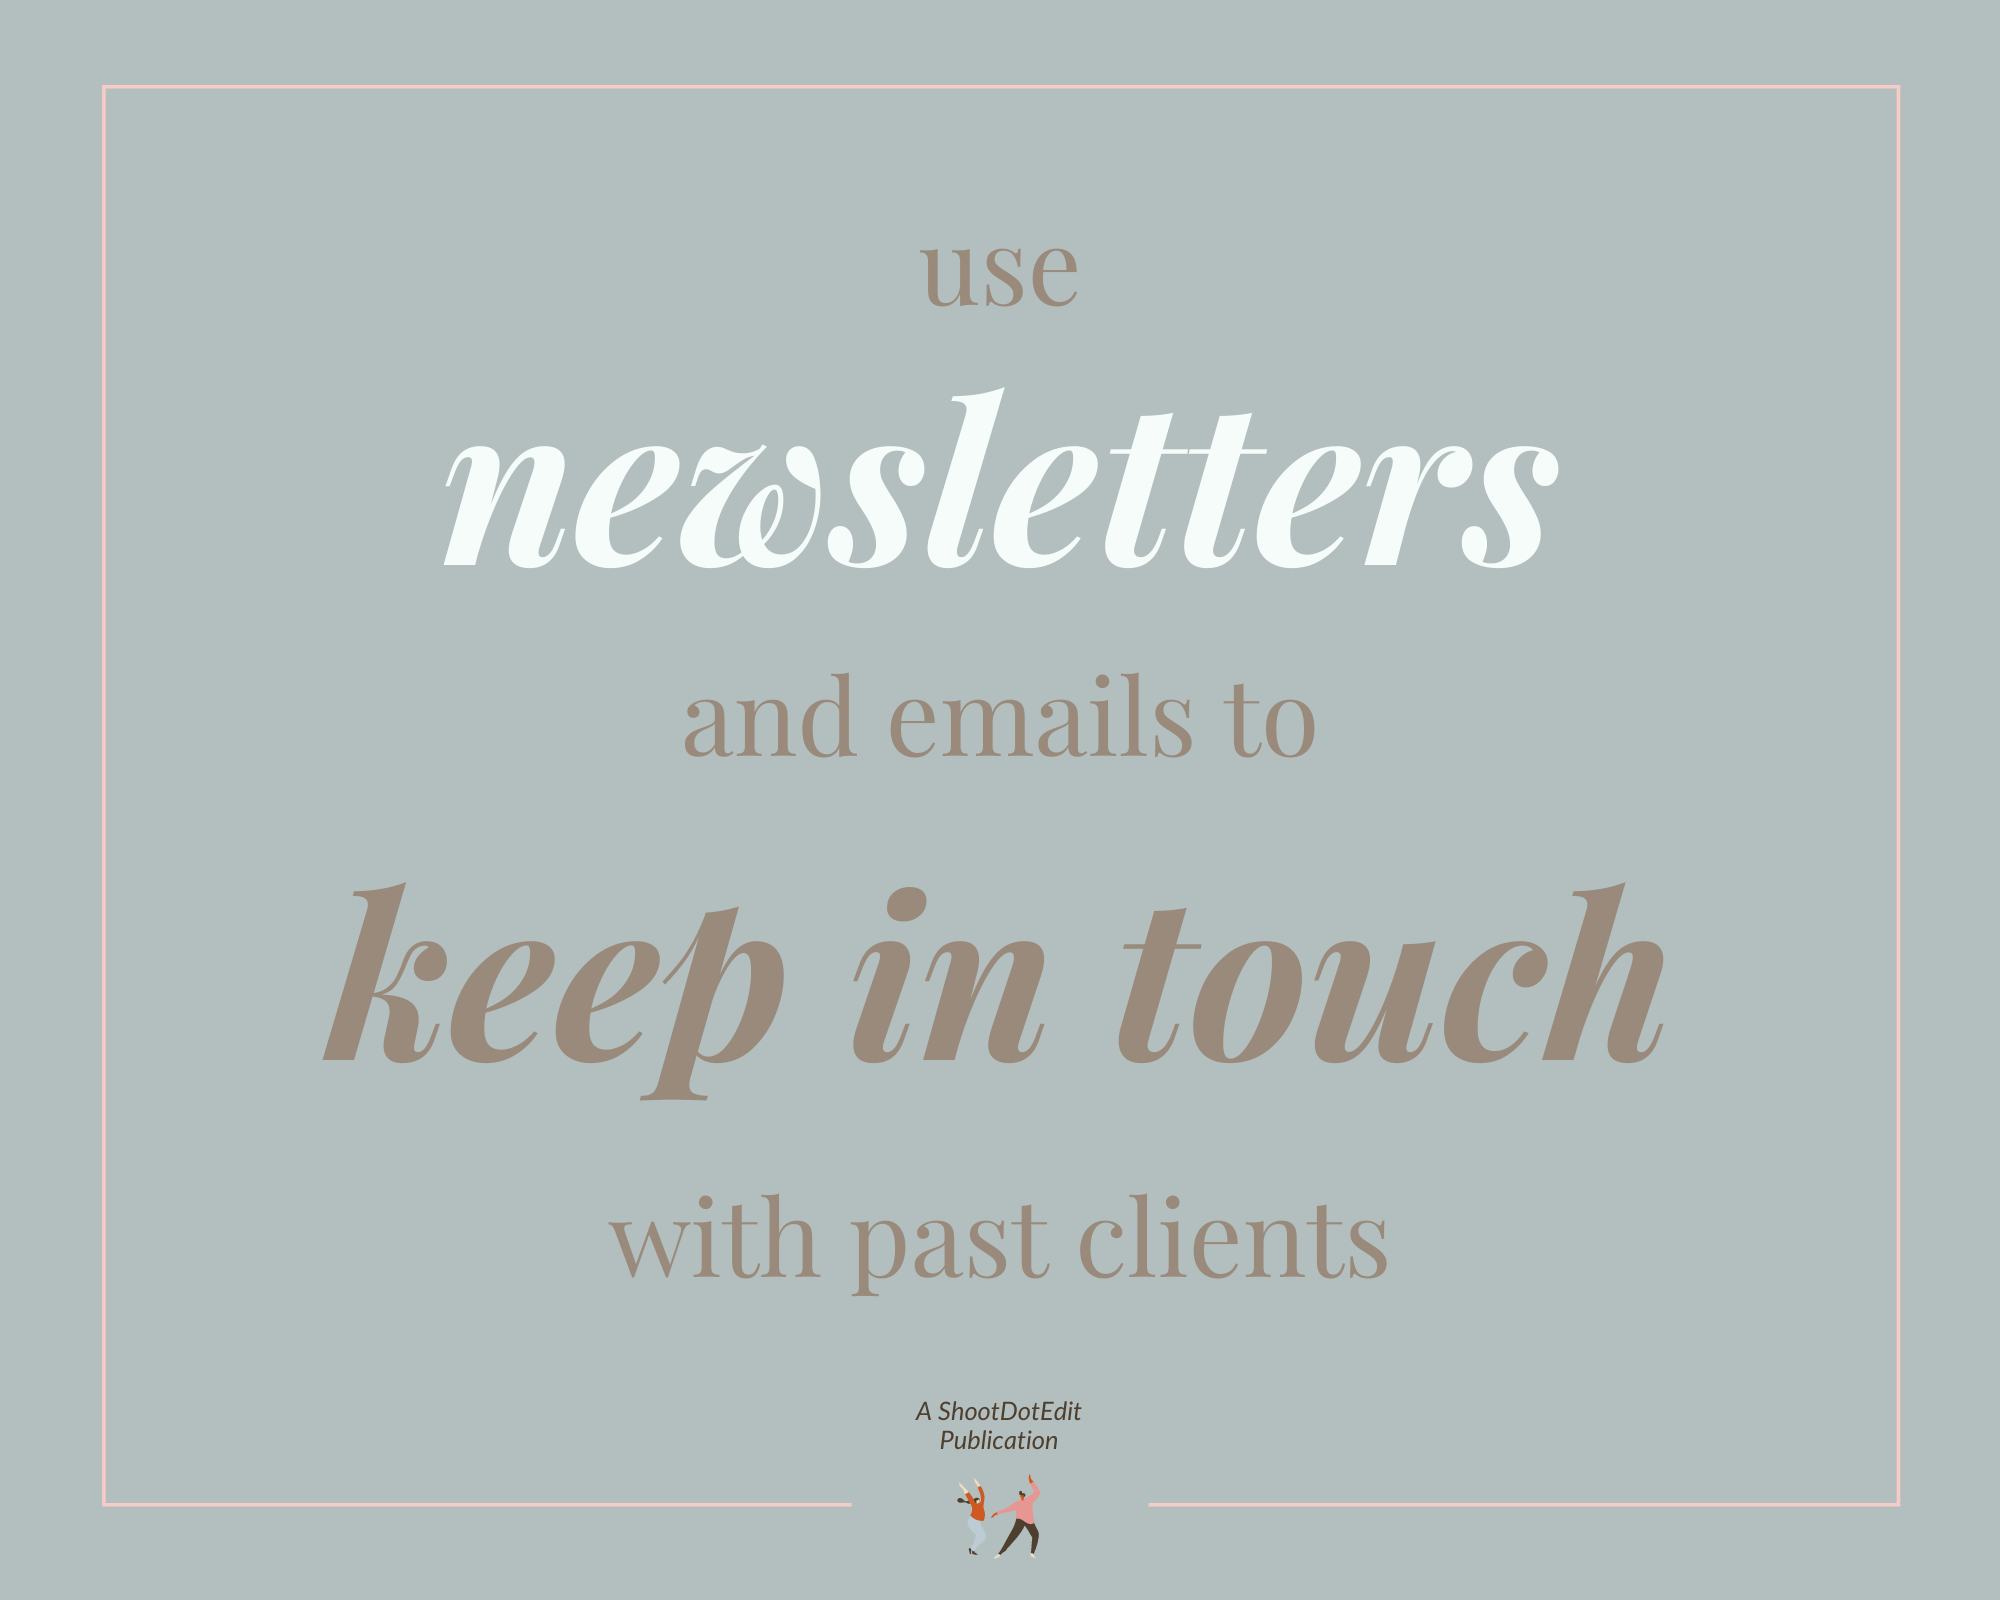 Infographic stating use newsletters and emails to keep in touch with past clients